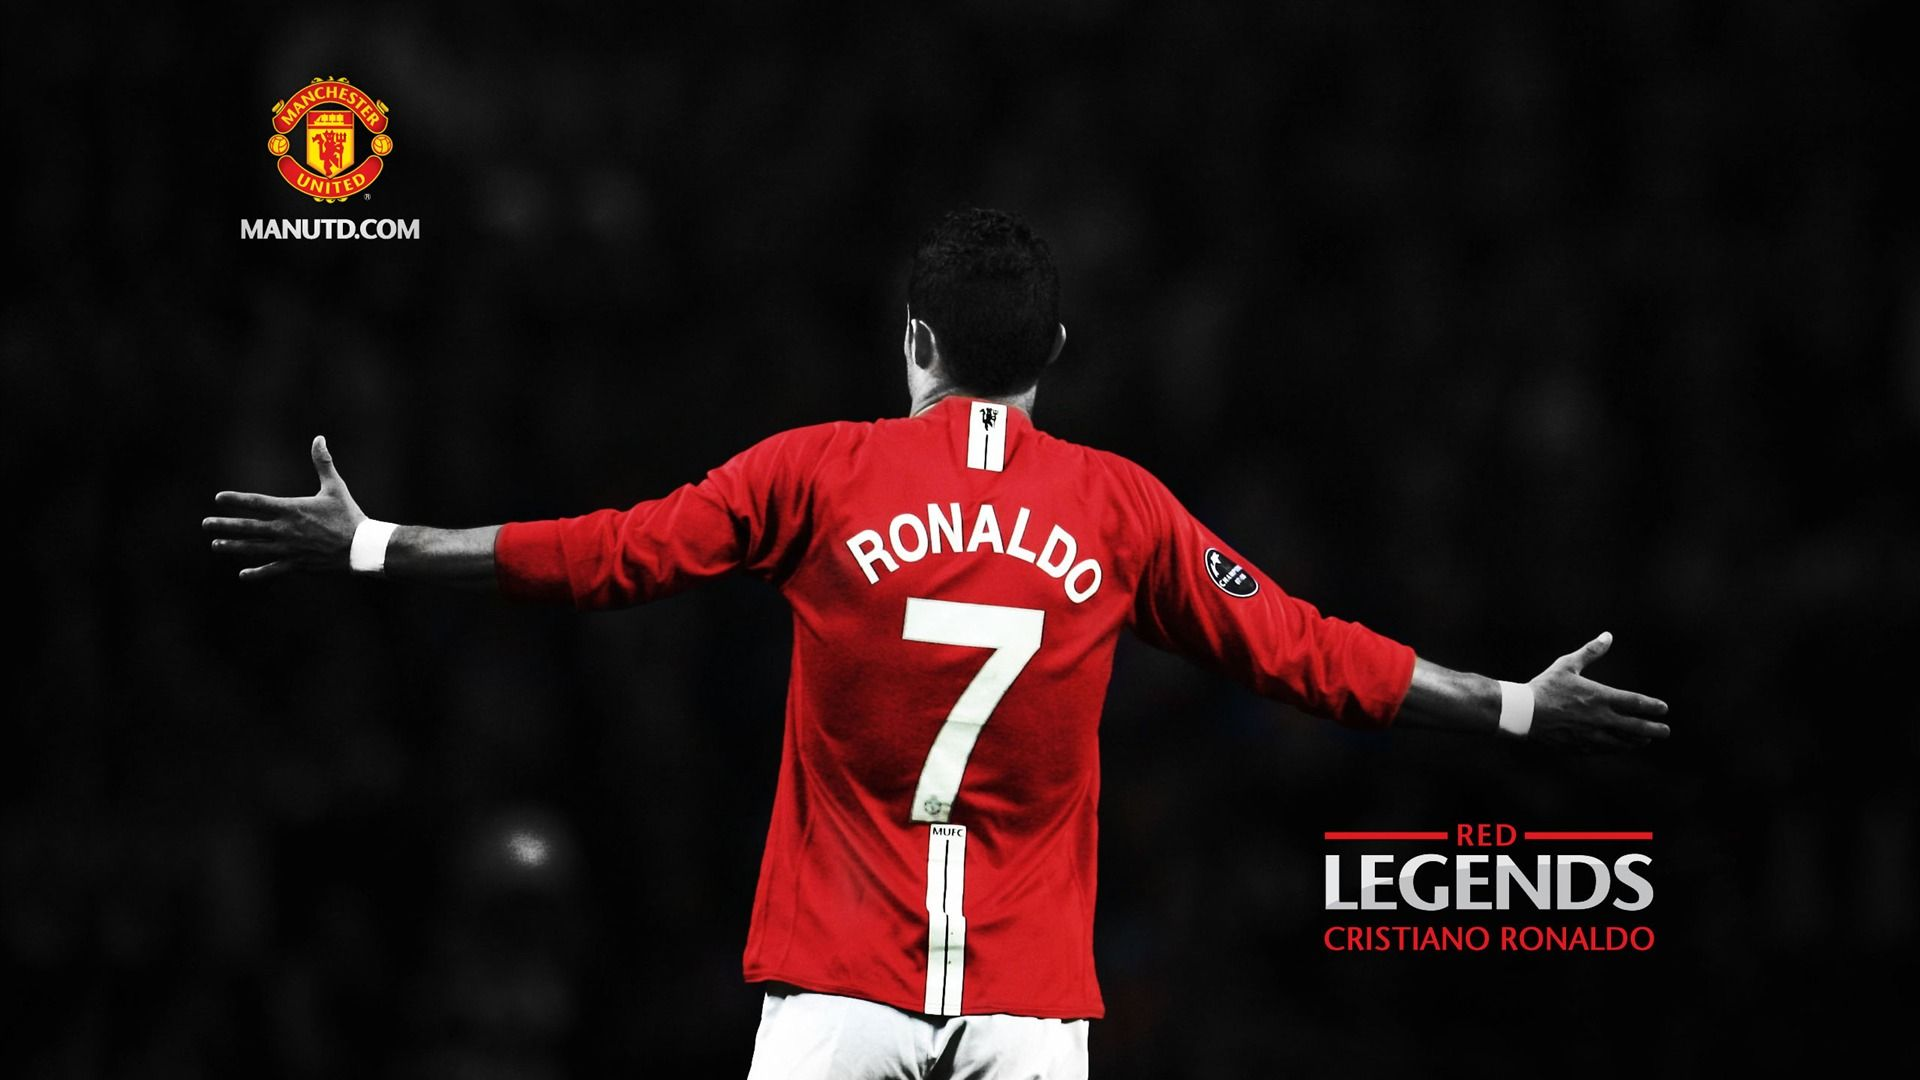 Hd wallpaper manchester united - Manchester United Hd Wallpapers 001